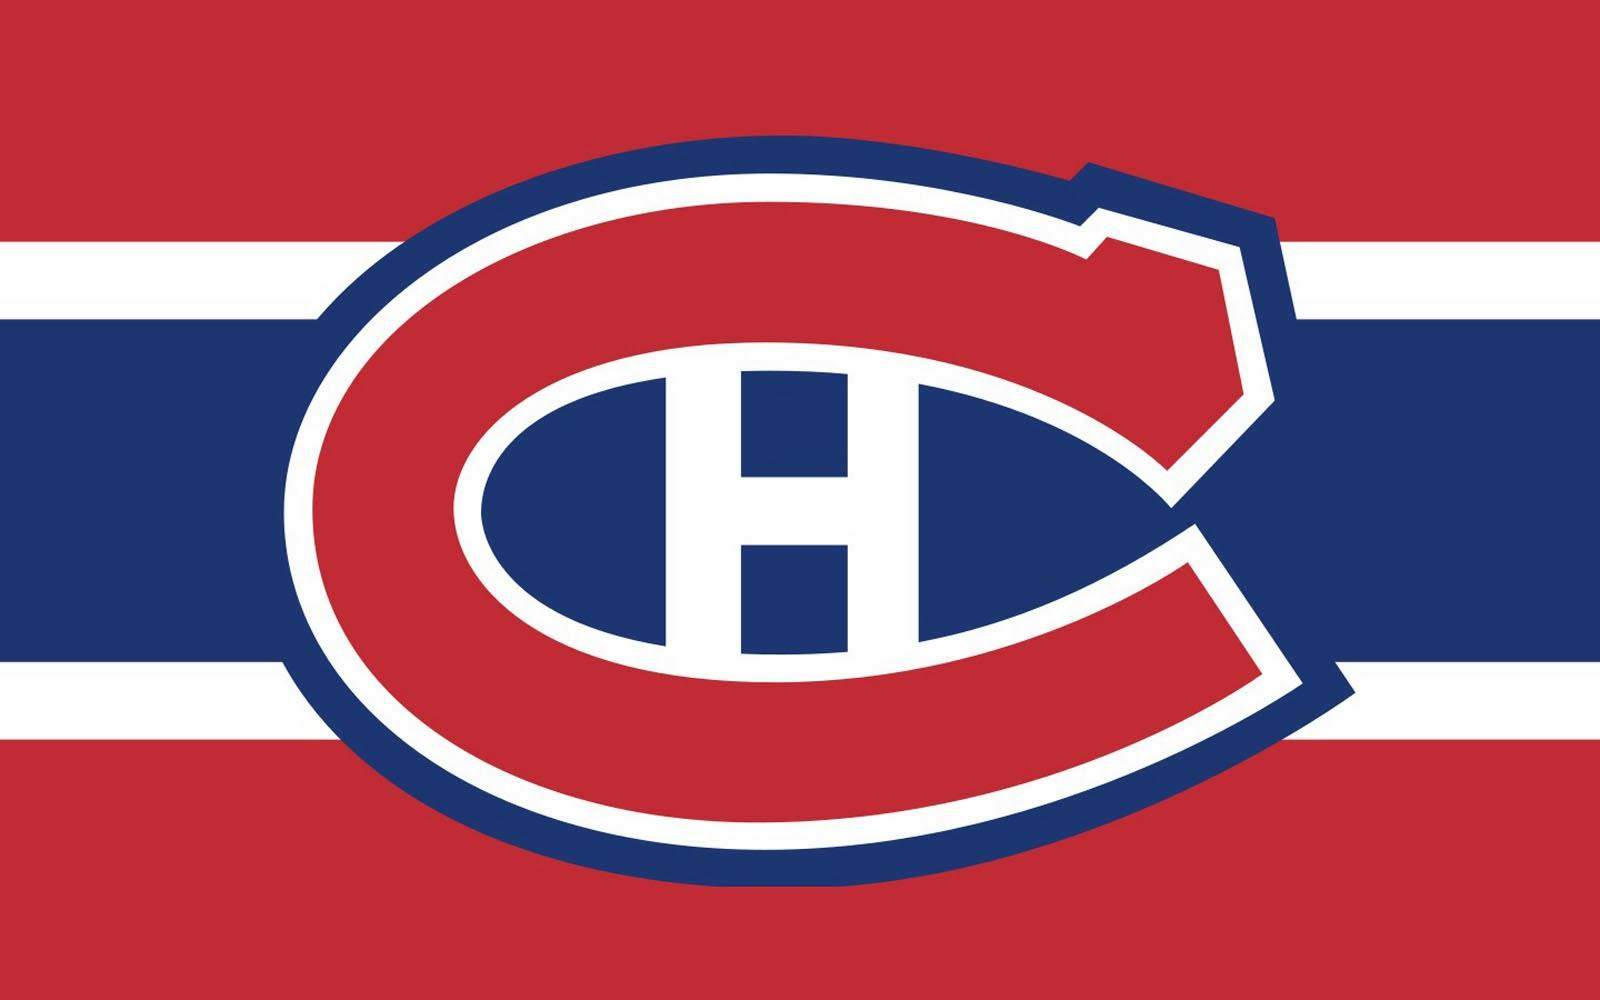 clipart-of-the-Montreal-Canadiens-Logo.jpg